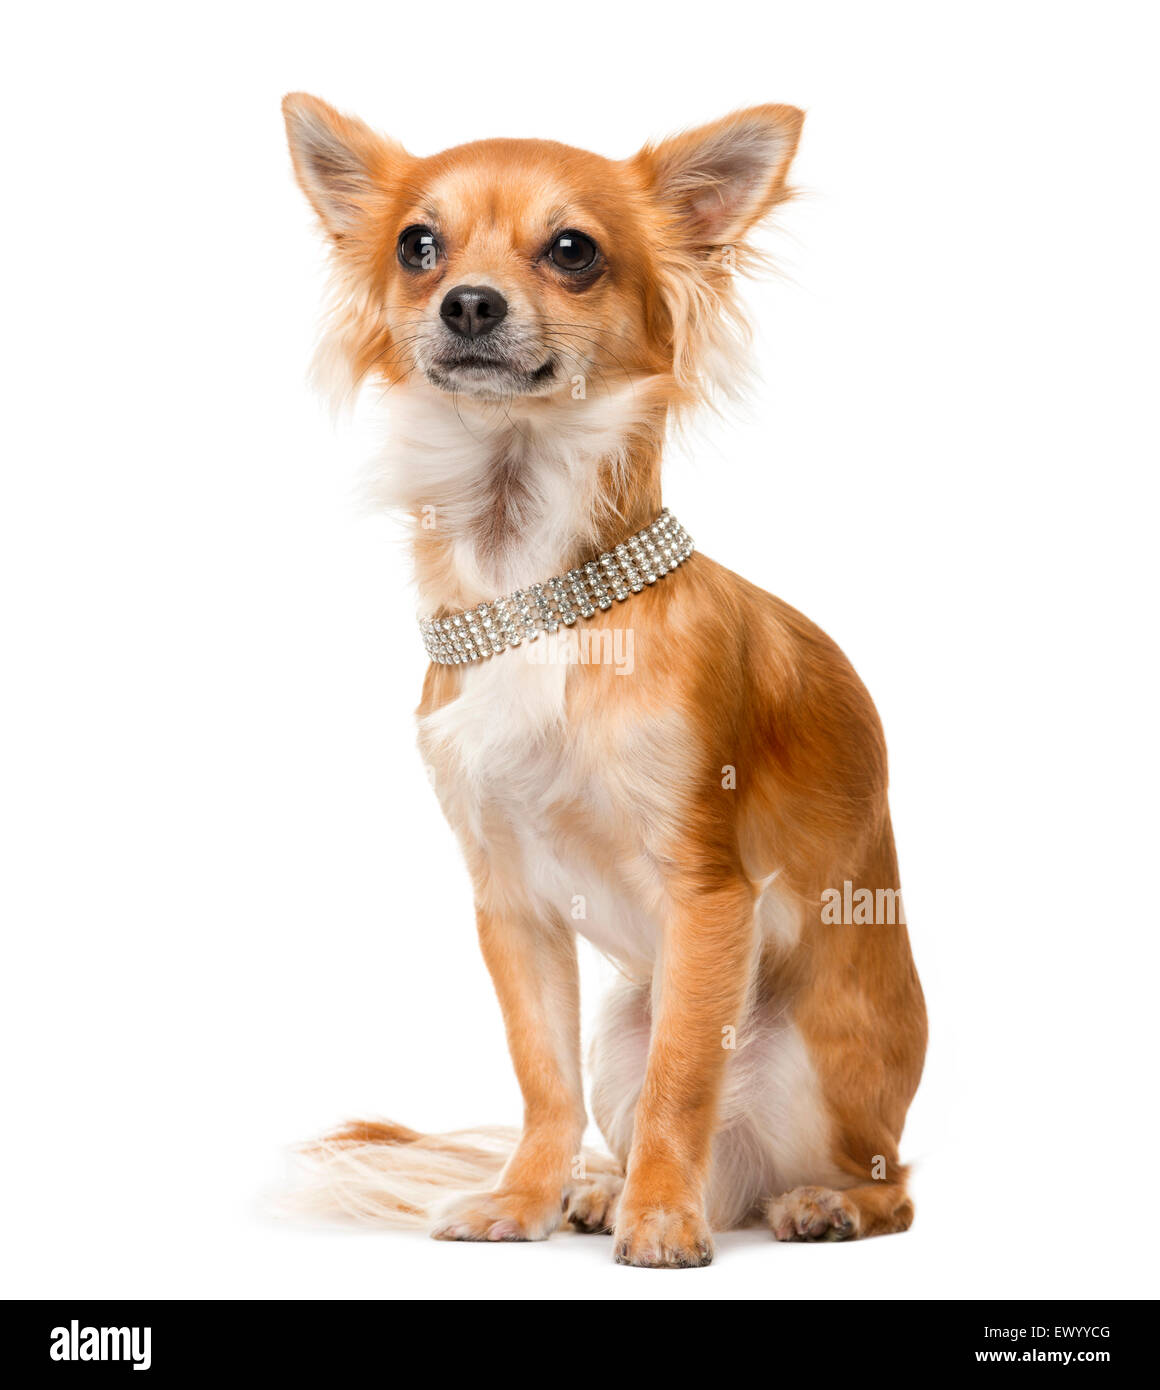 Chihuahua (2 years old) in front of a white background - Stock Image